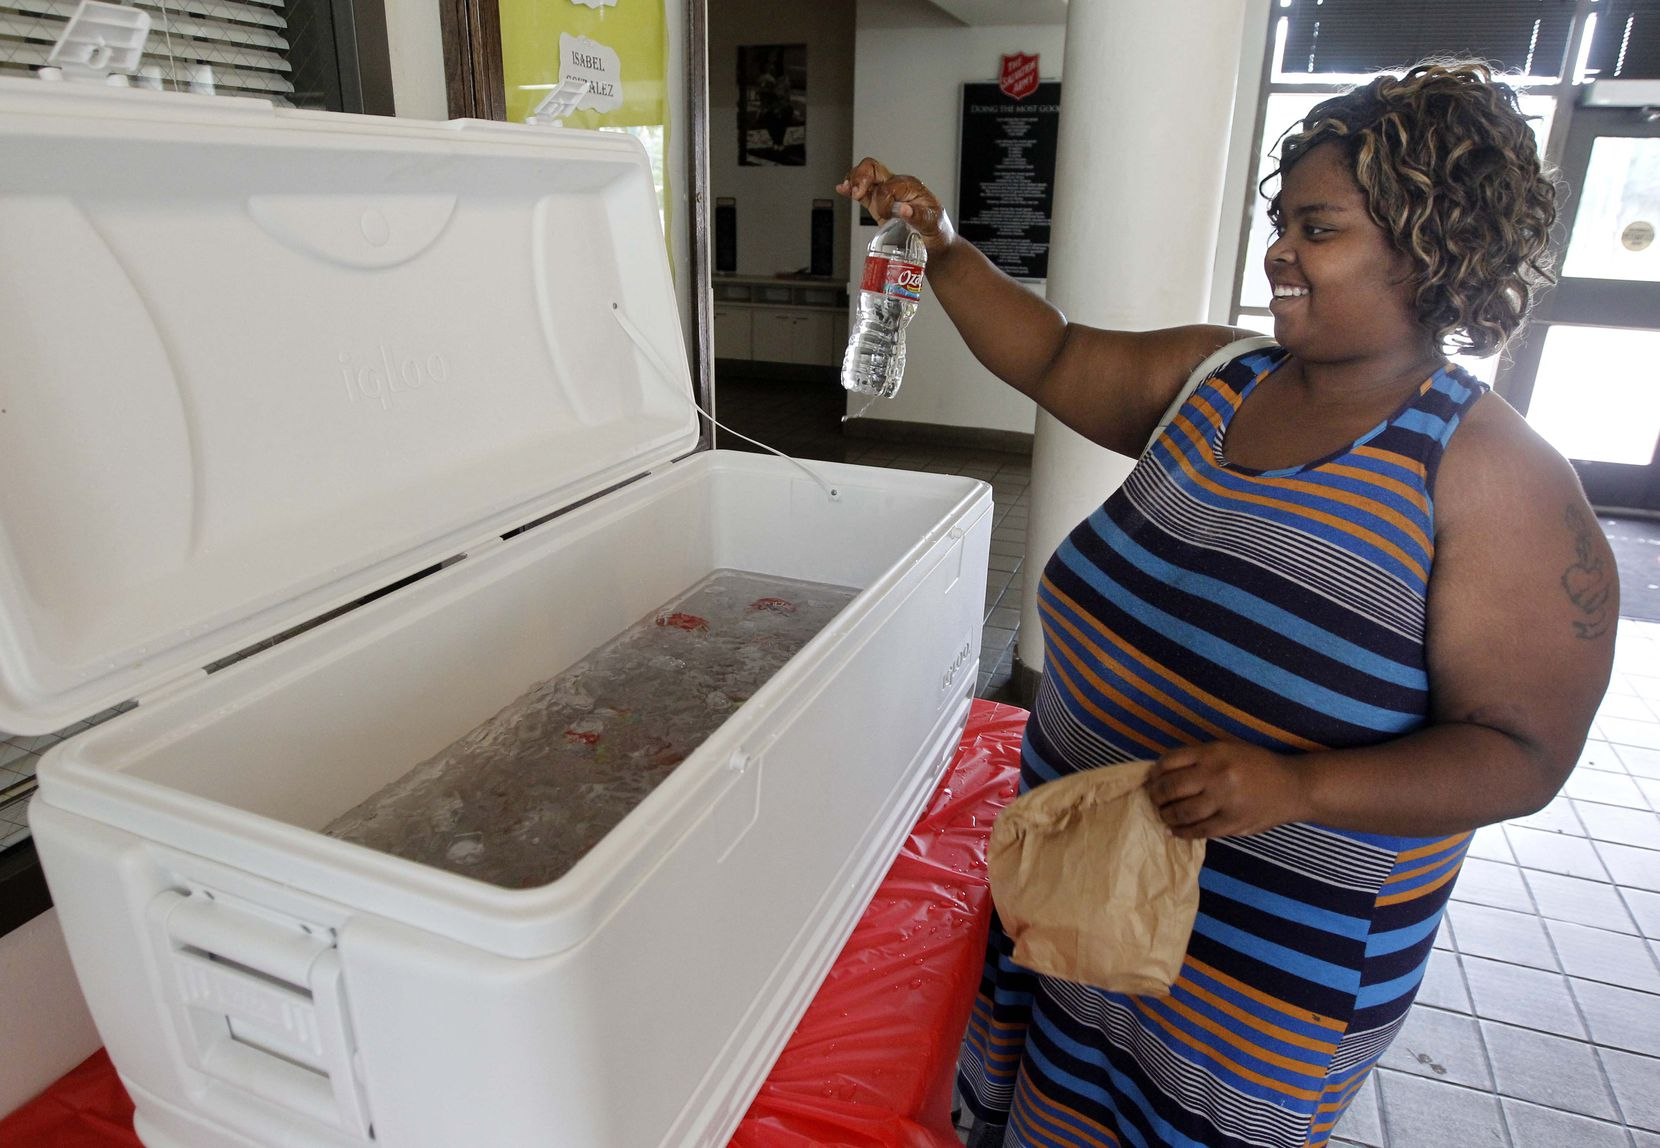 Ashley Ellis grabs an bottle of water at a cooling center at the Salvation Army's Carr  P. Collins Center at 5302 Harry Hines Blvd in Dallas.